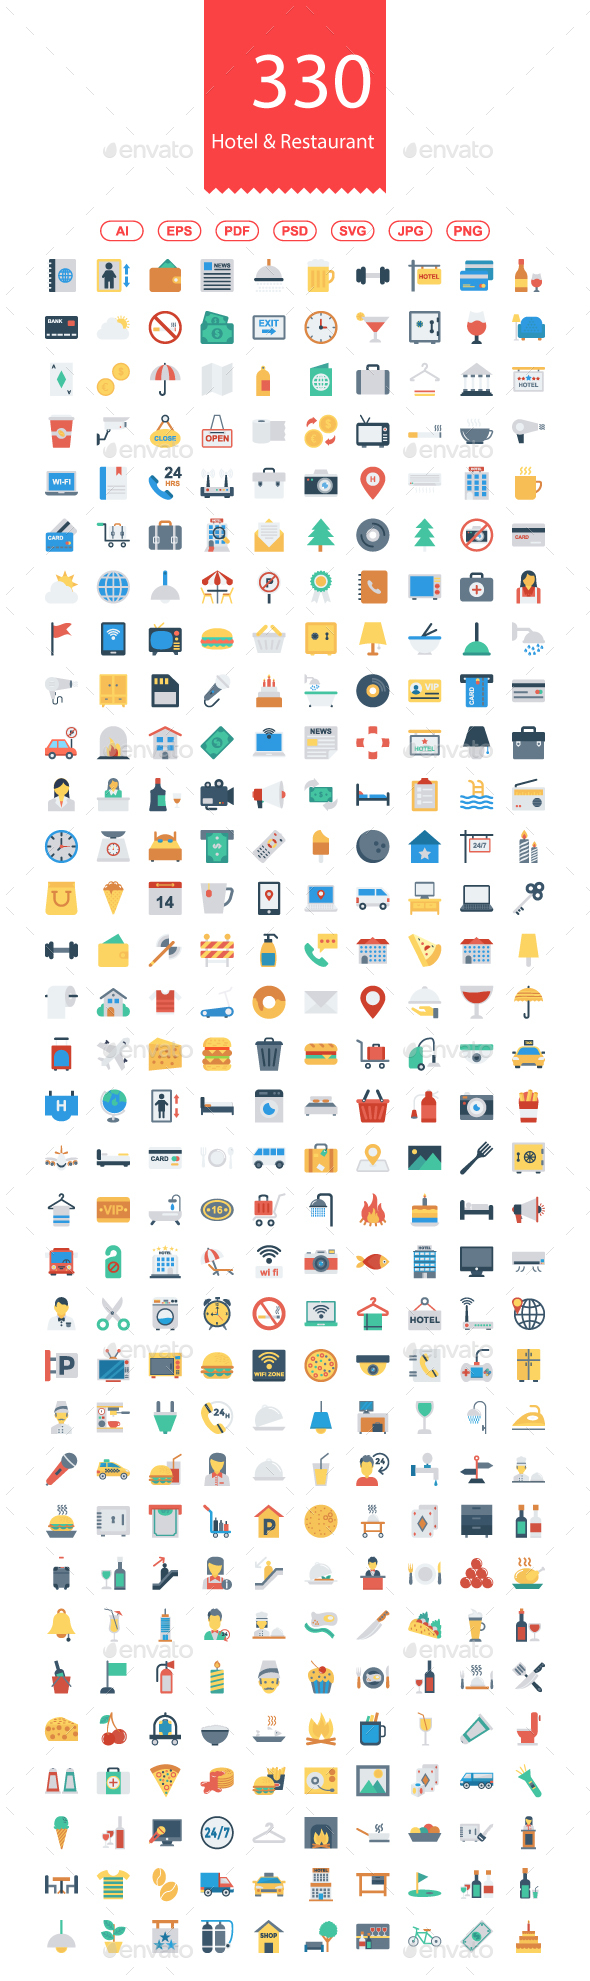 300+ Hotel & Restaurant Flat Icons - Business Icons